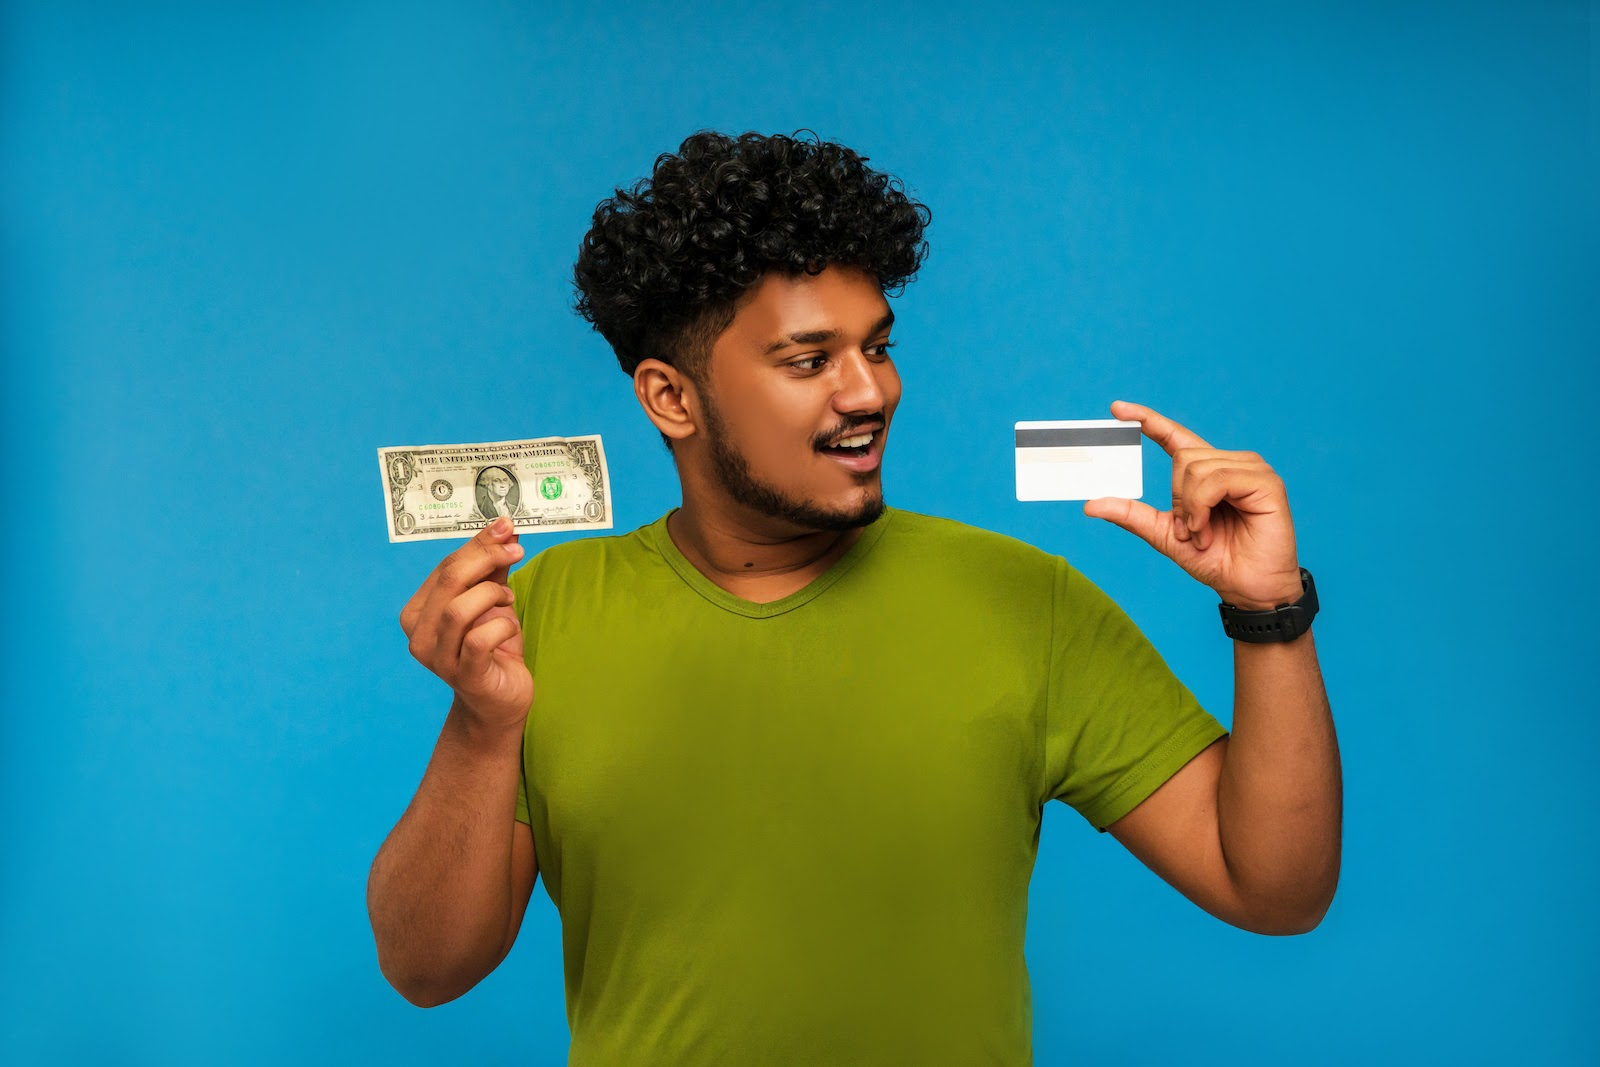 A team member holds up cash and a credit card stipend